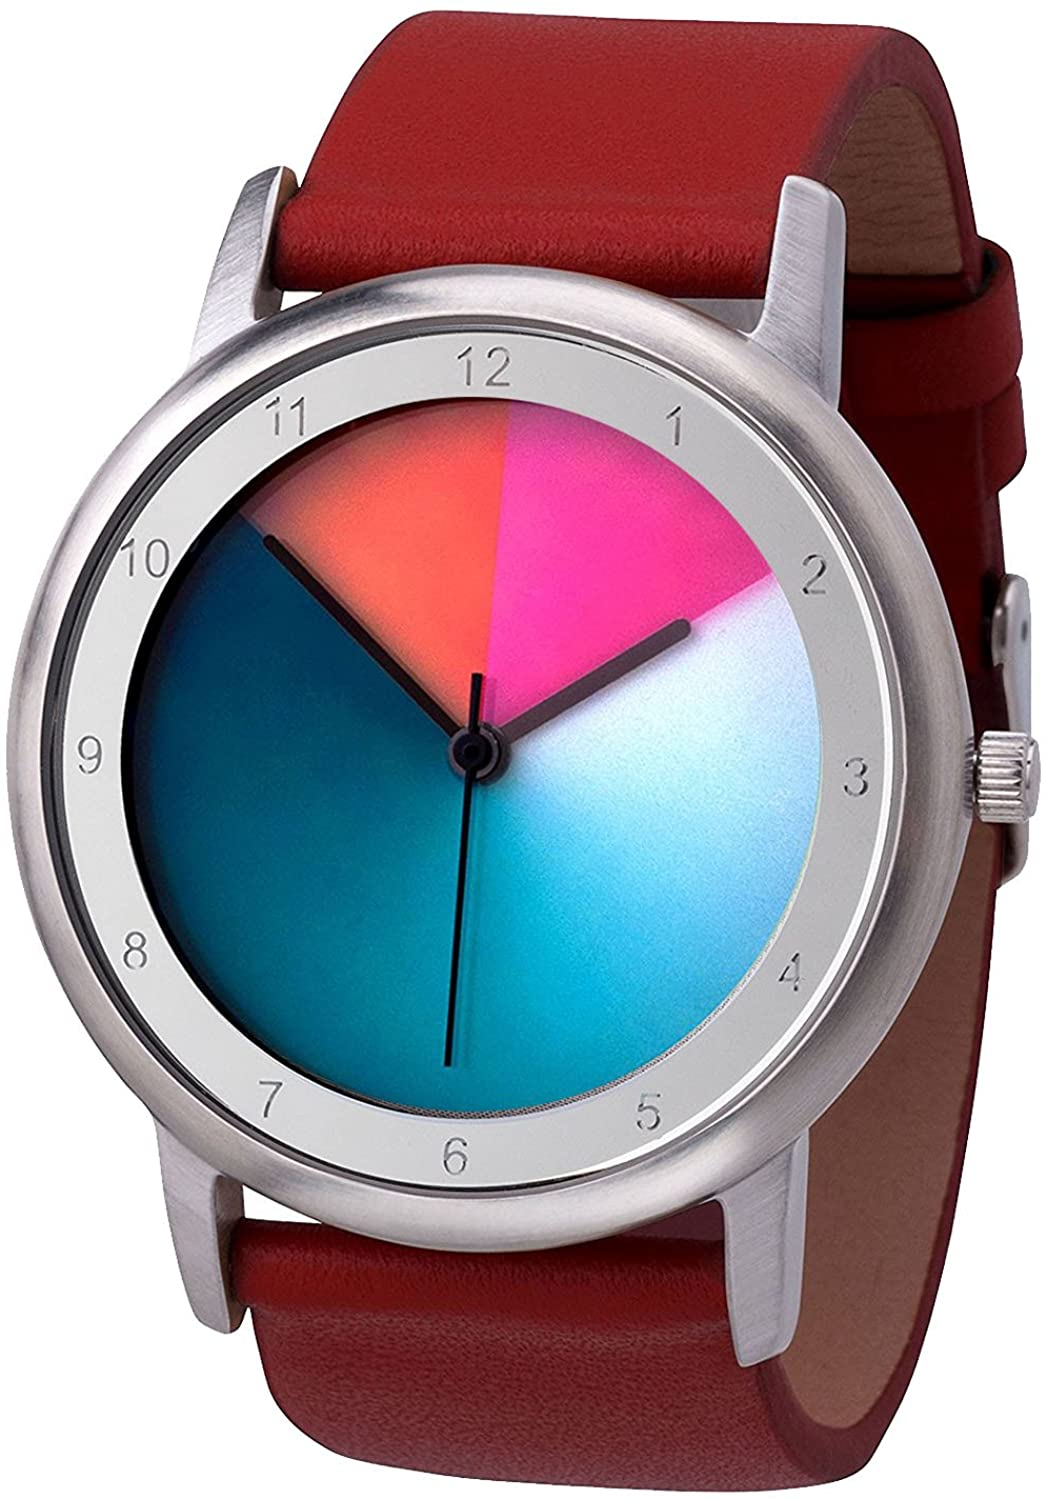 Rainbow Watch Avantgardia Unisex Quartz Watch Classic Colorchanging